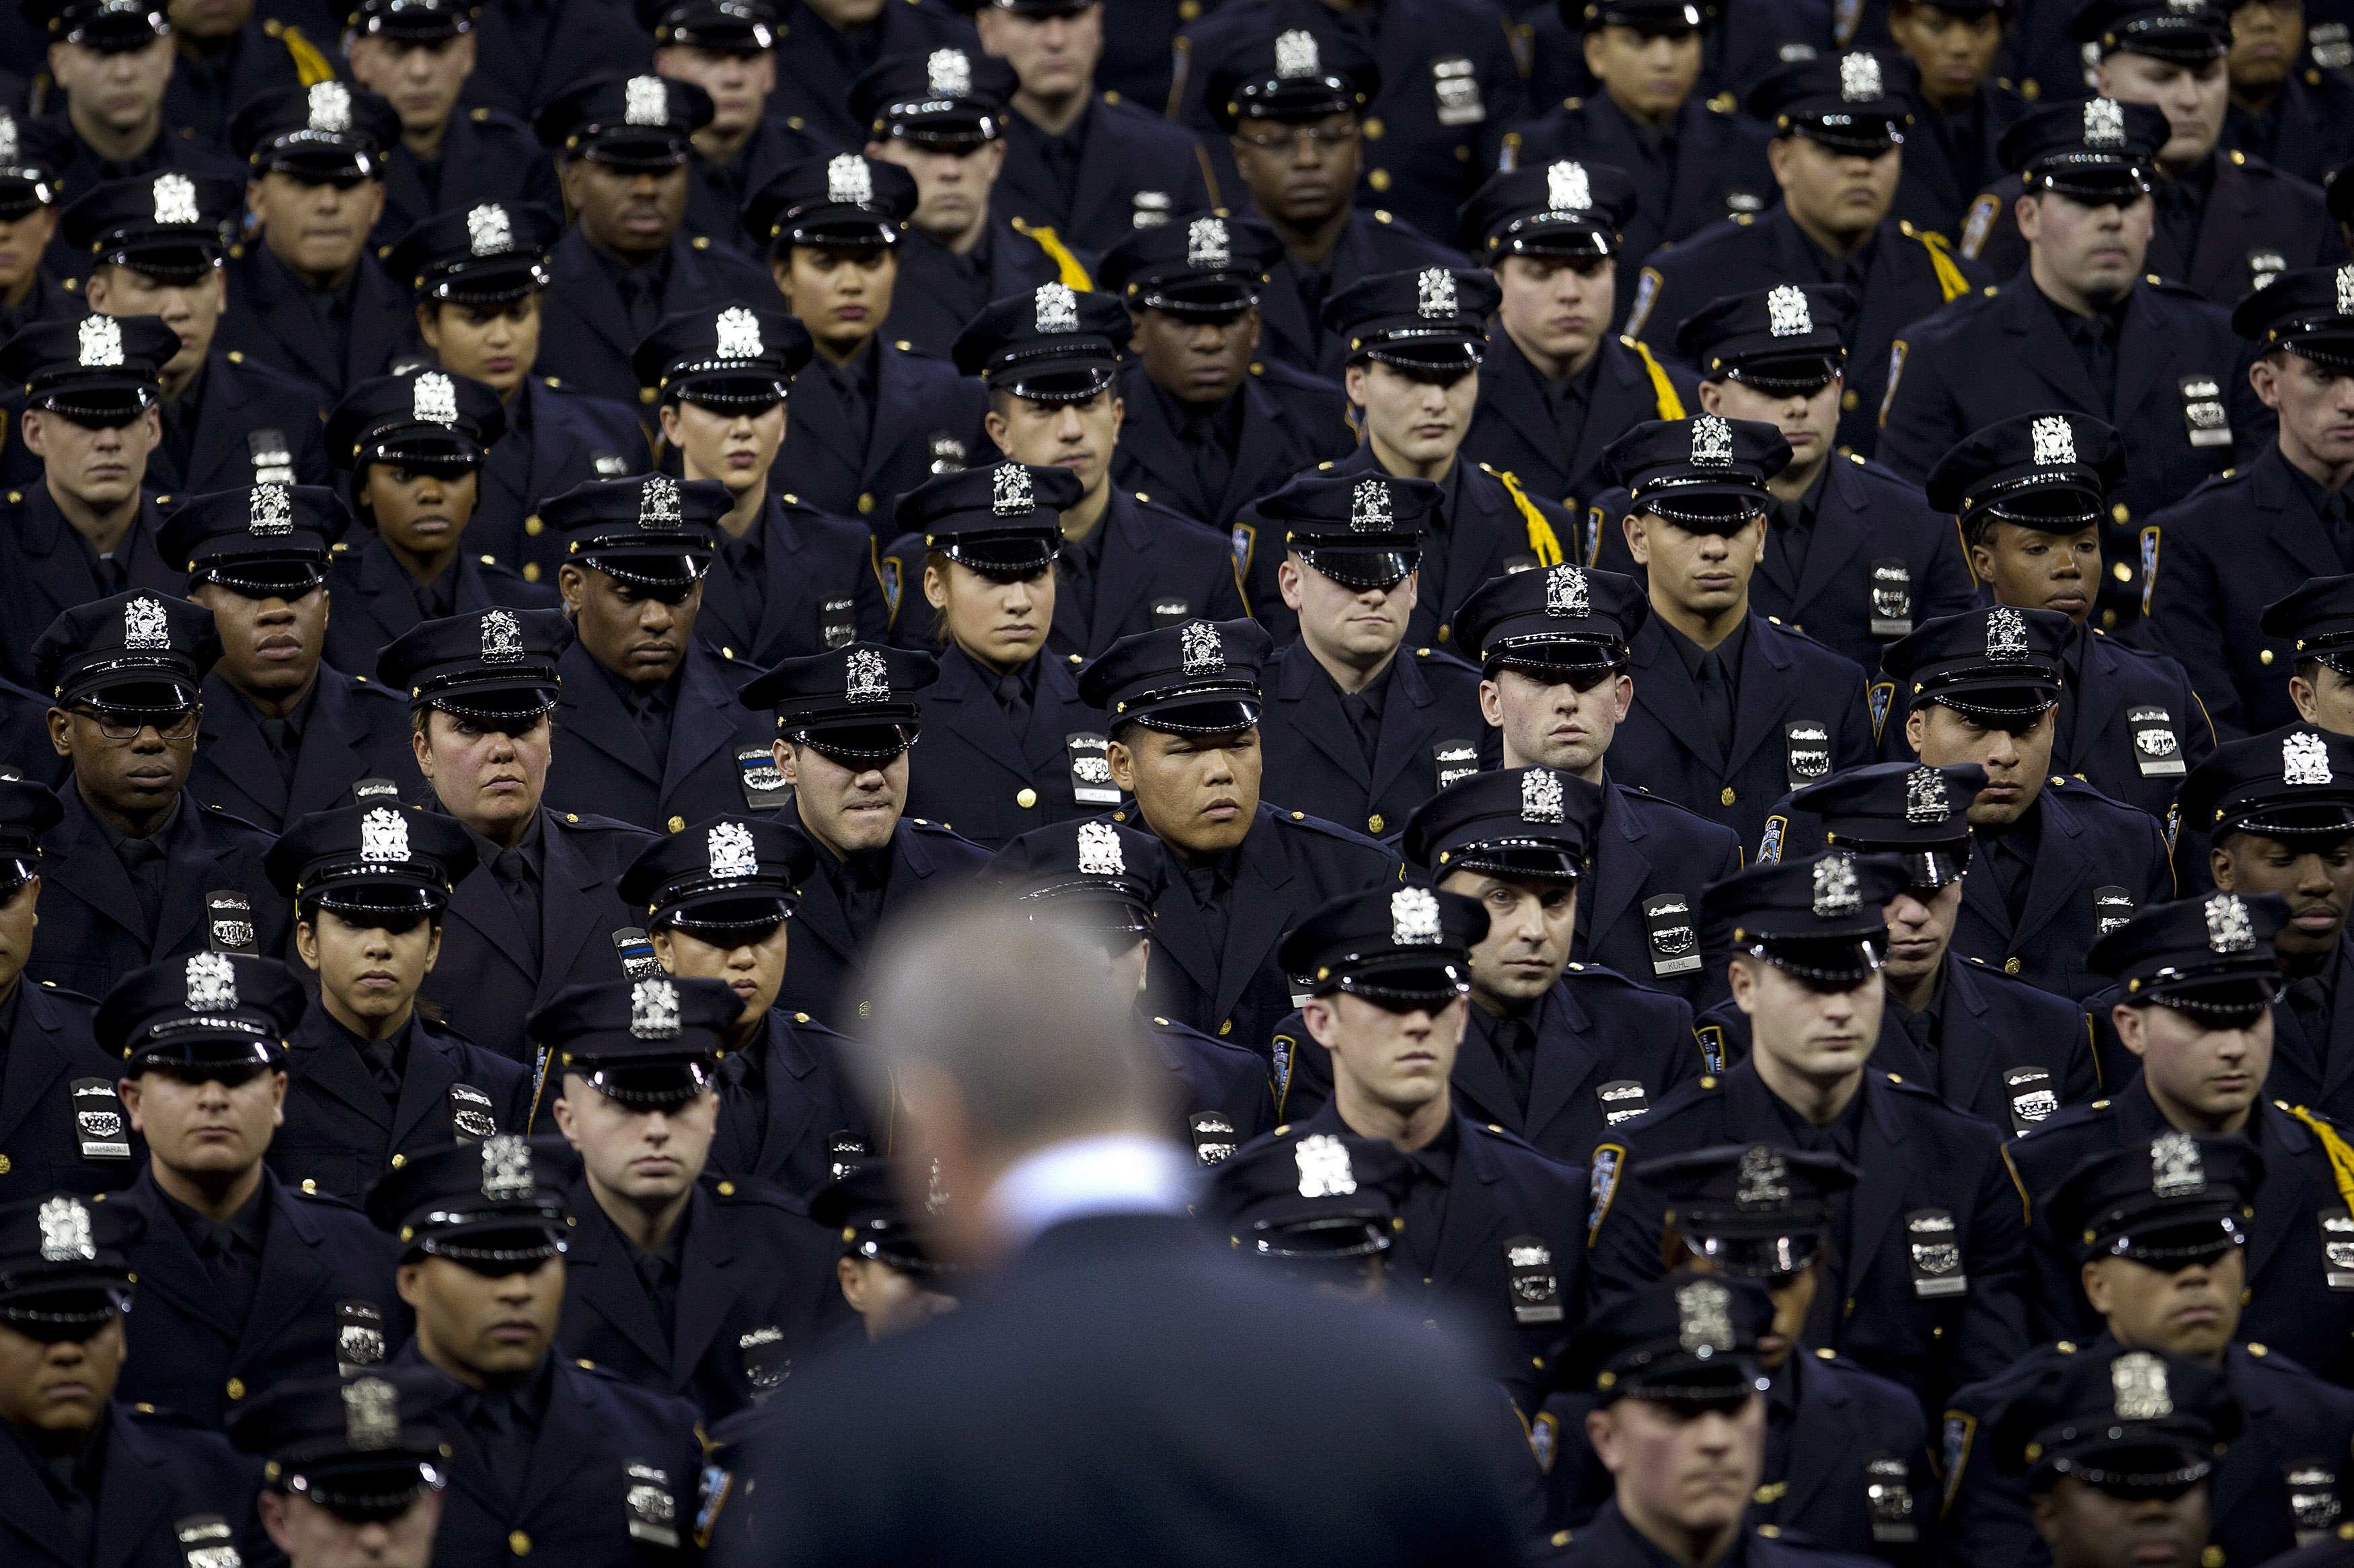 New York Mayor Bill de Blasio speaks from the podium to the New York City Police Academy Graduating class in New Yorkon Dec. 29, 2014.